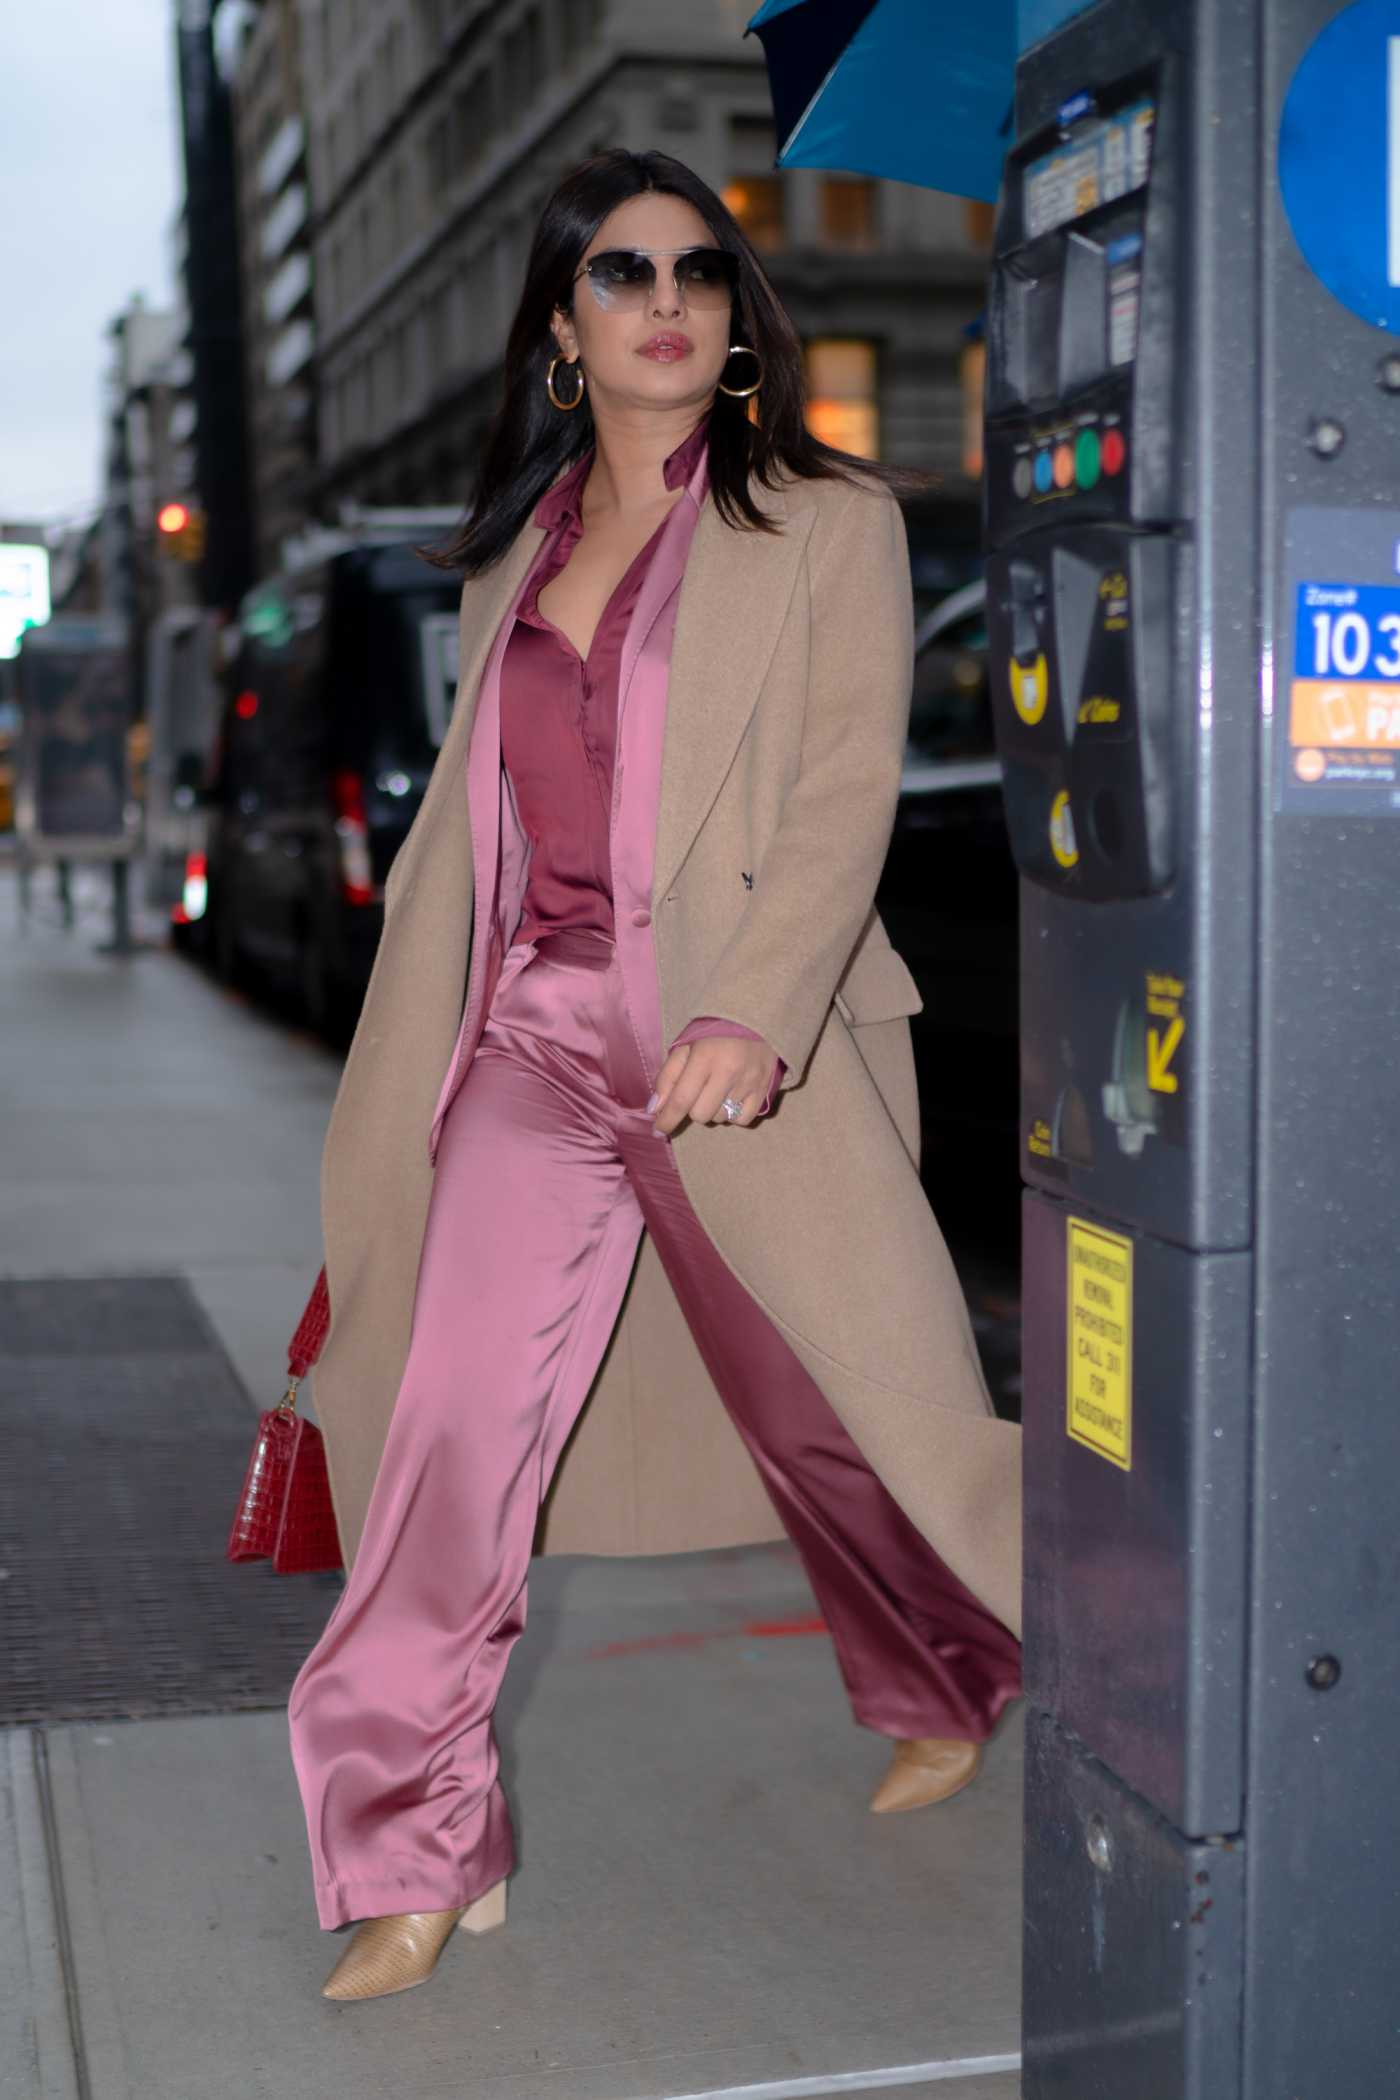 Priyanka Chopra in a Beige Coat Was Seen Out in New York 12/17/2019